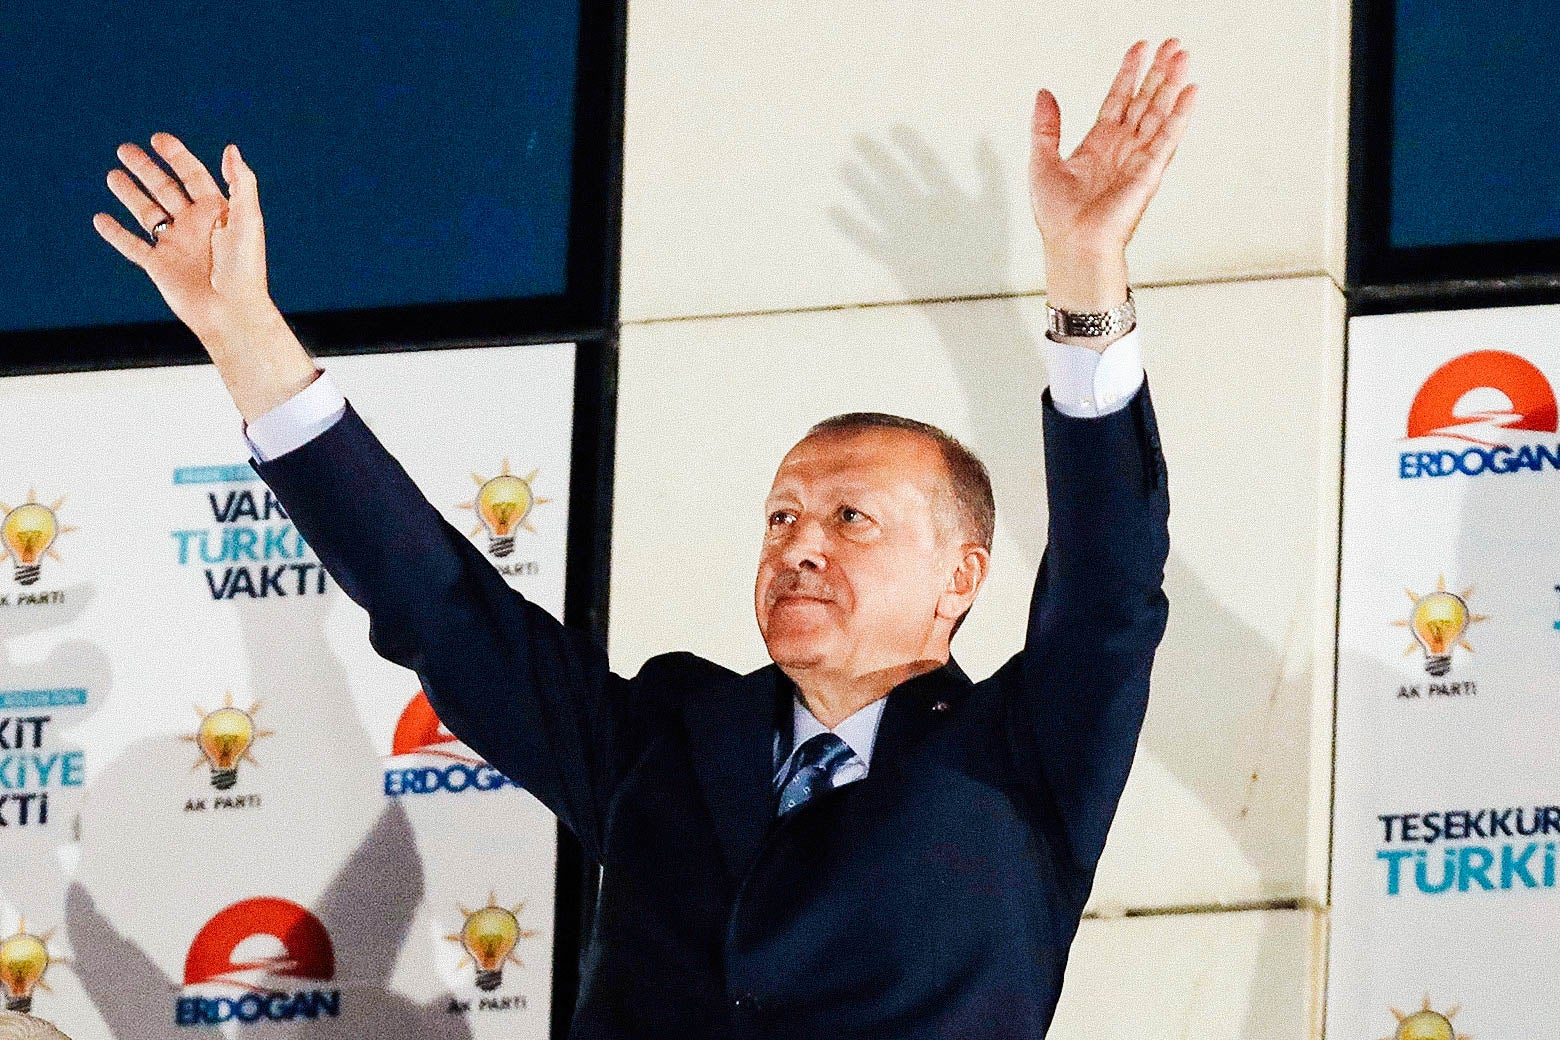 Arms outstretched in a double wave, Turkish President Recep Tayyip Erdogan greets his supporters gathered in front of the AKP headquarters in Ankara on Monday.